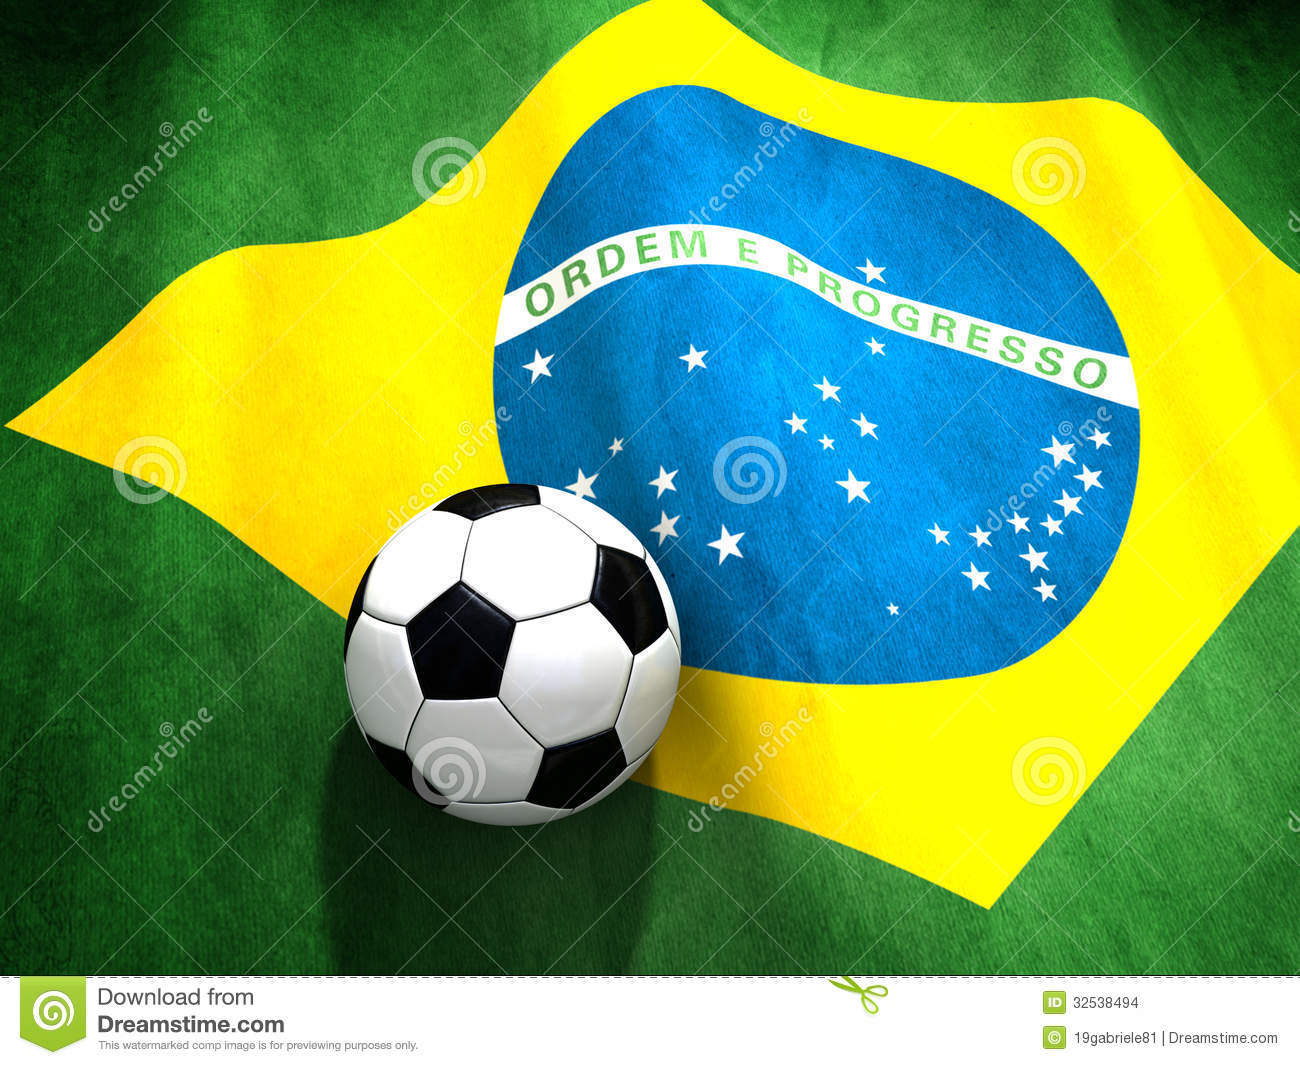 an overview of the position of soccer in the brazilian sports Brazilian women's soccer superstar marta was named fifa world player of the year a record five consecutive times, beginning in 2006 athlete, soccer player (1986-.